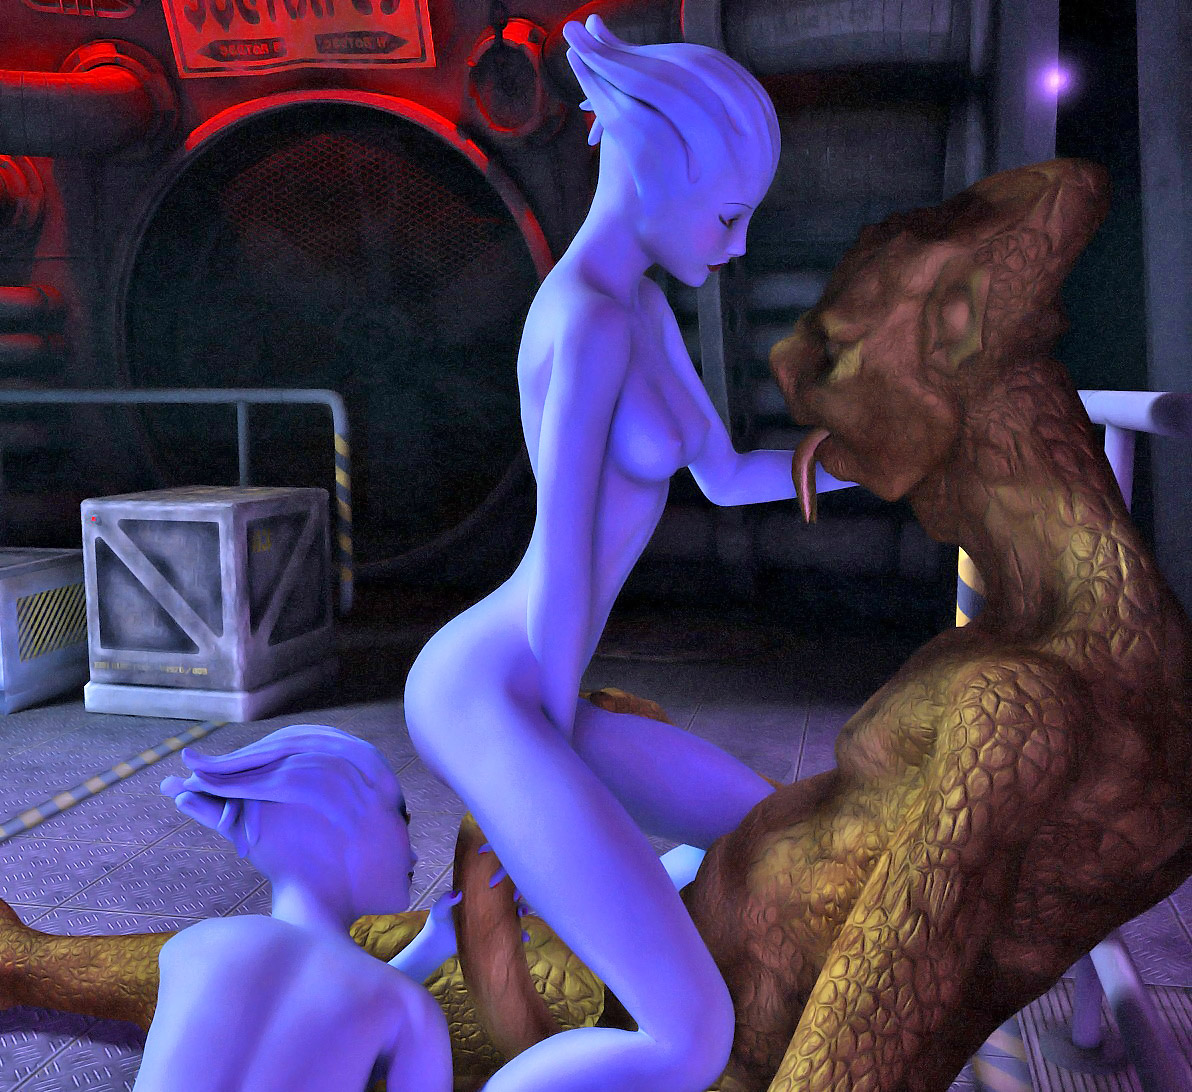 Green alien women getting fucked Naked Alien Girl Gets Fucked Very Hot Porno Free Gallery